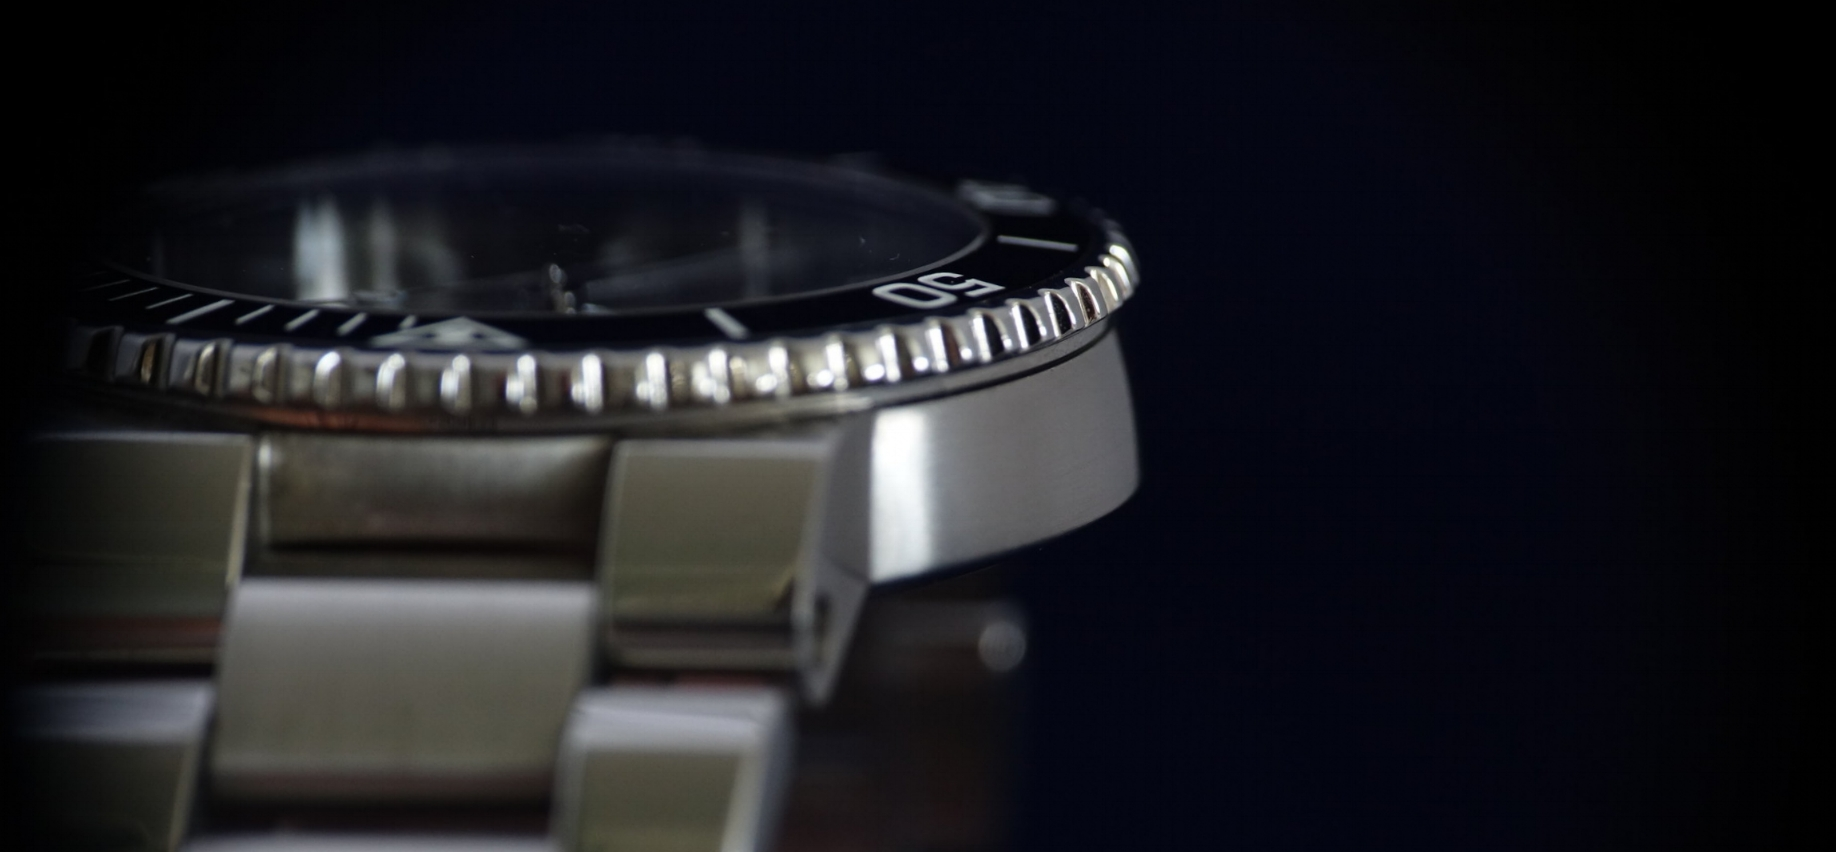 Just look at those curves! This is the closest a watch has ever been having hot hips!